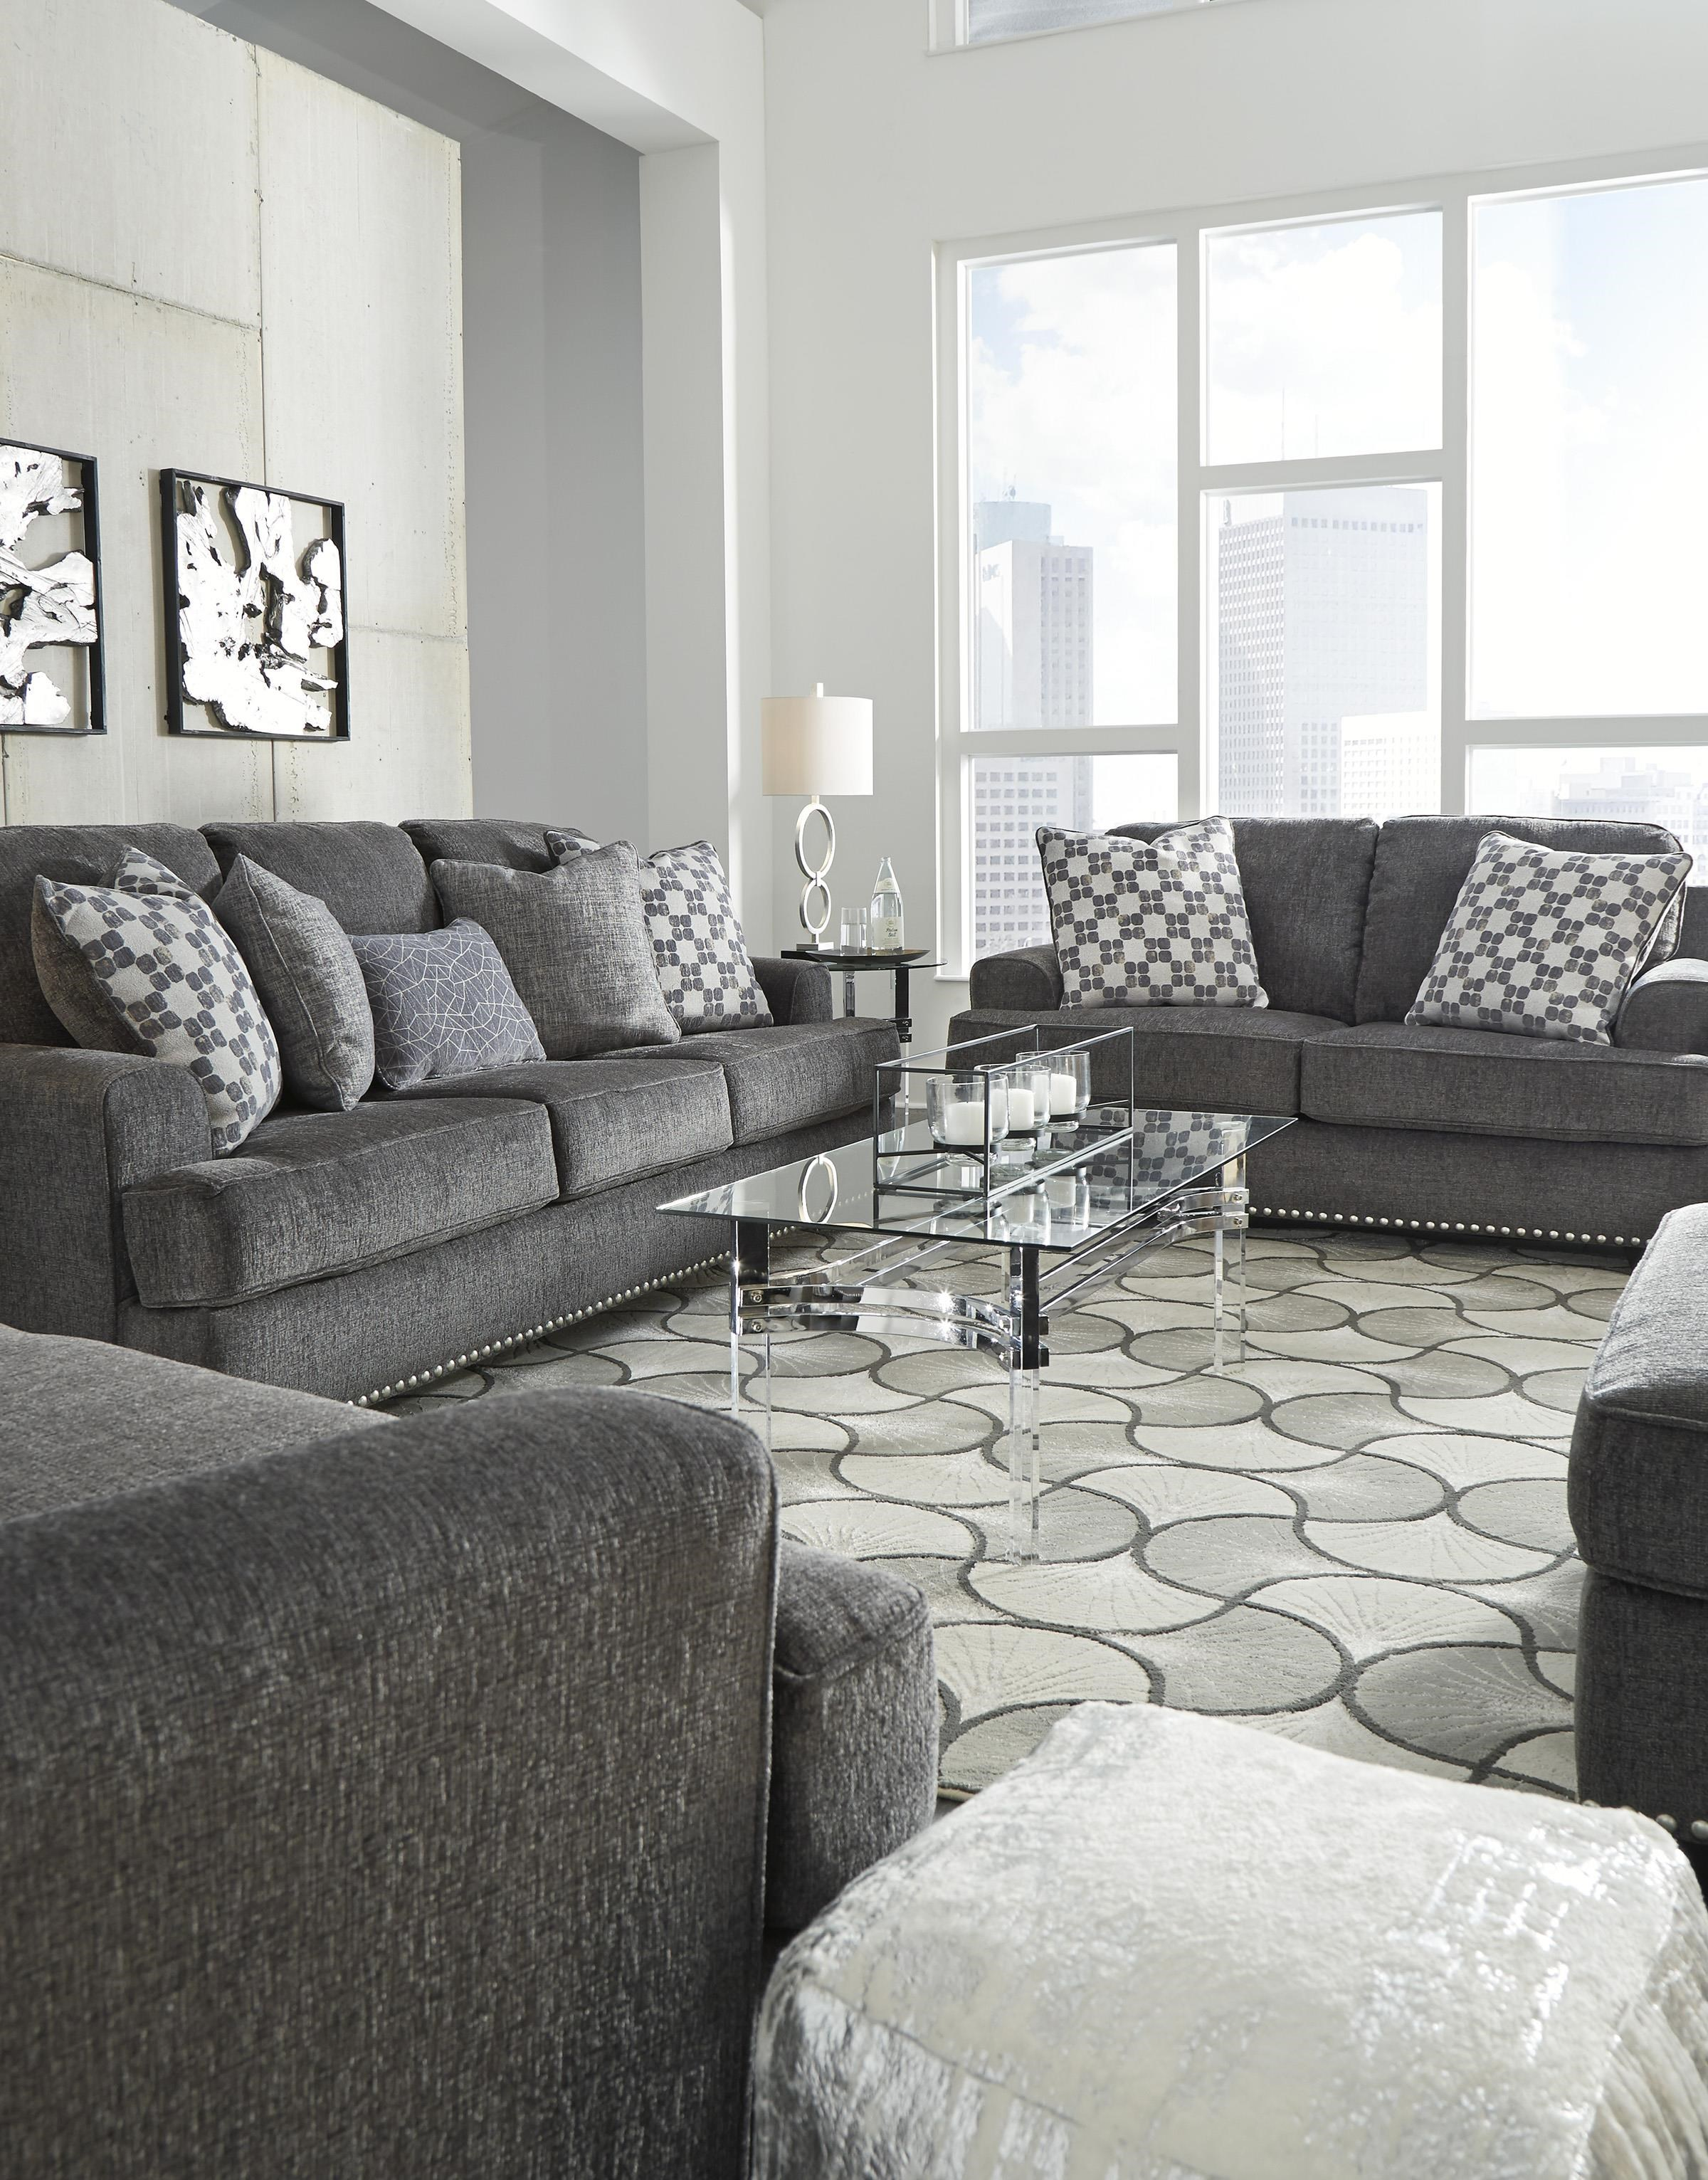 Locklin Sofa, Loveseat and Chair Set by Benchcraft at Sam Levitz Outlet